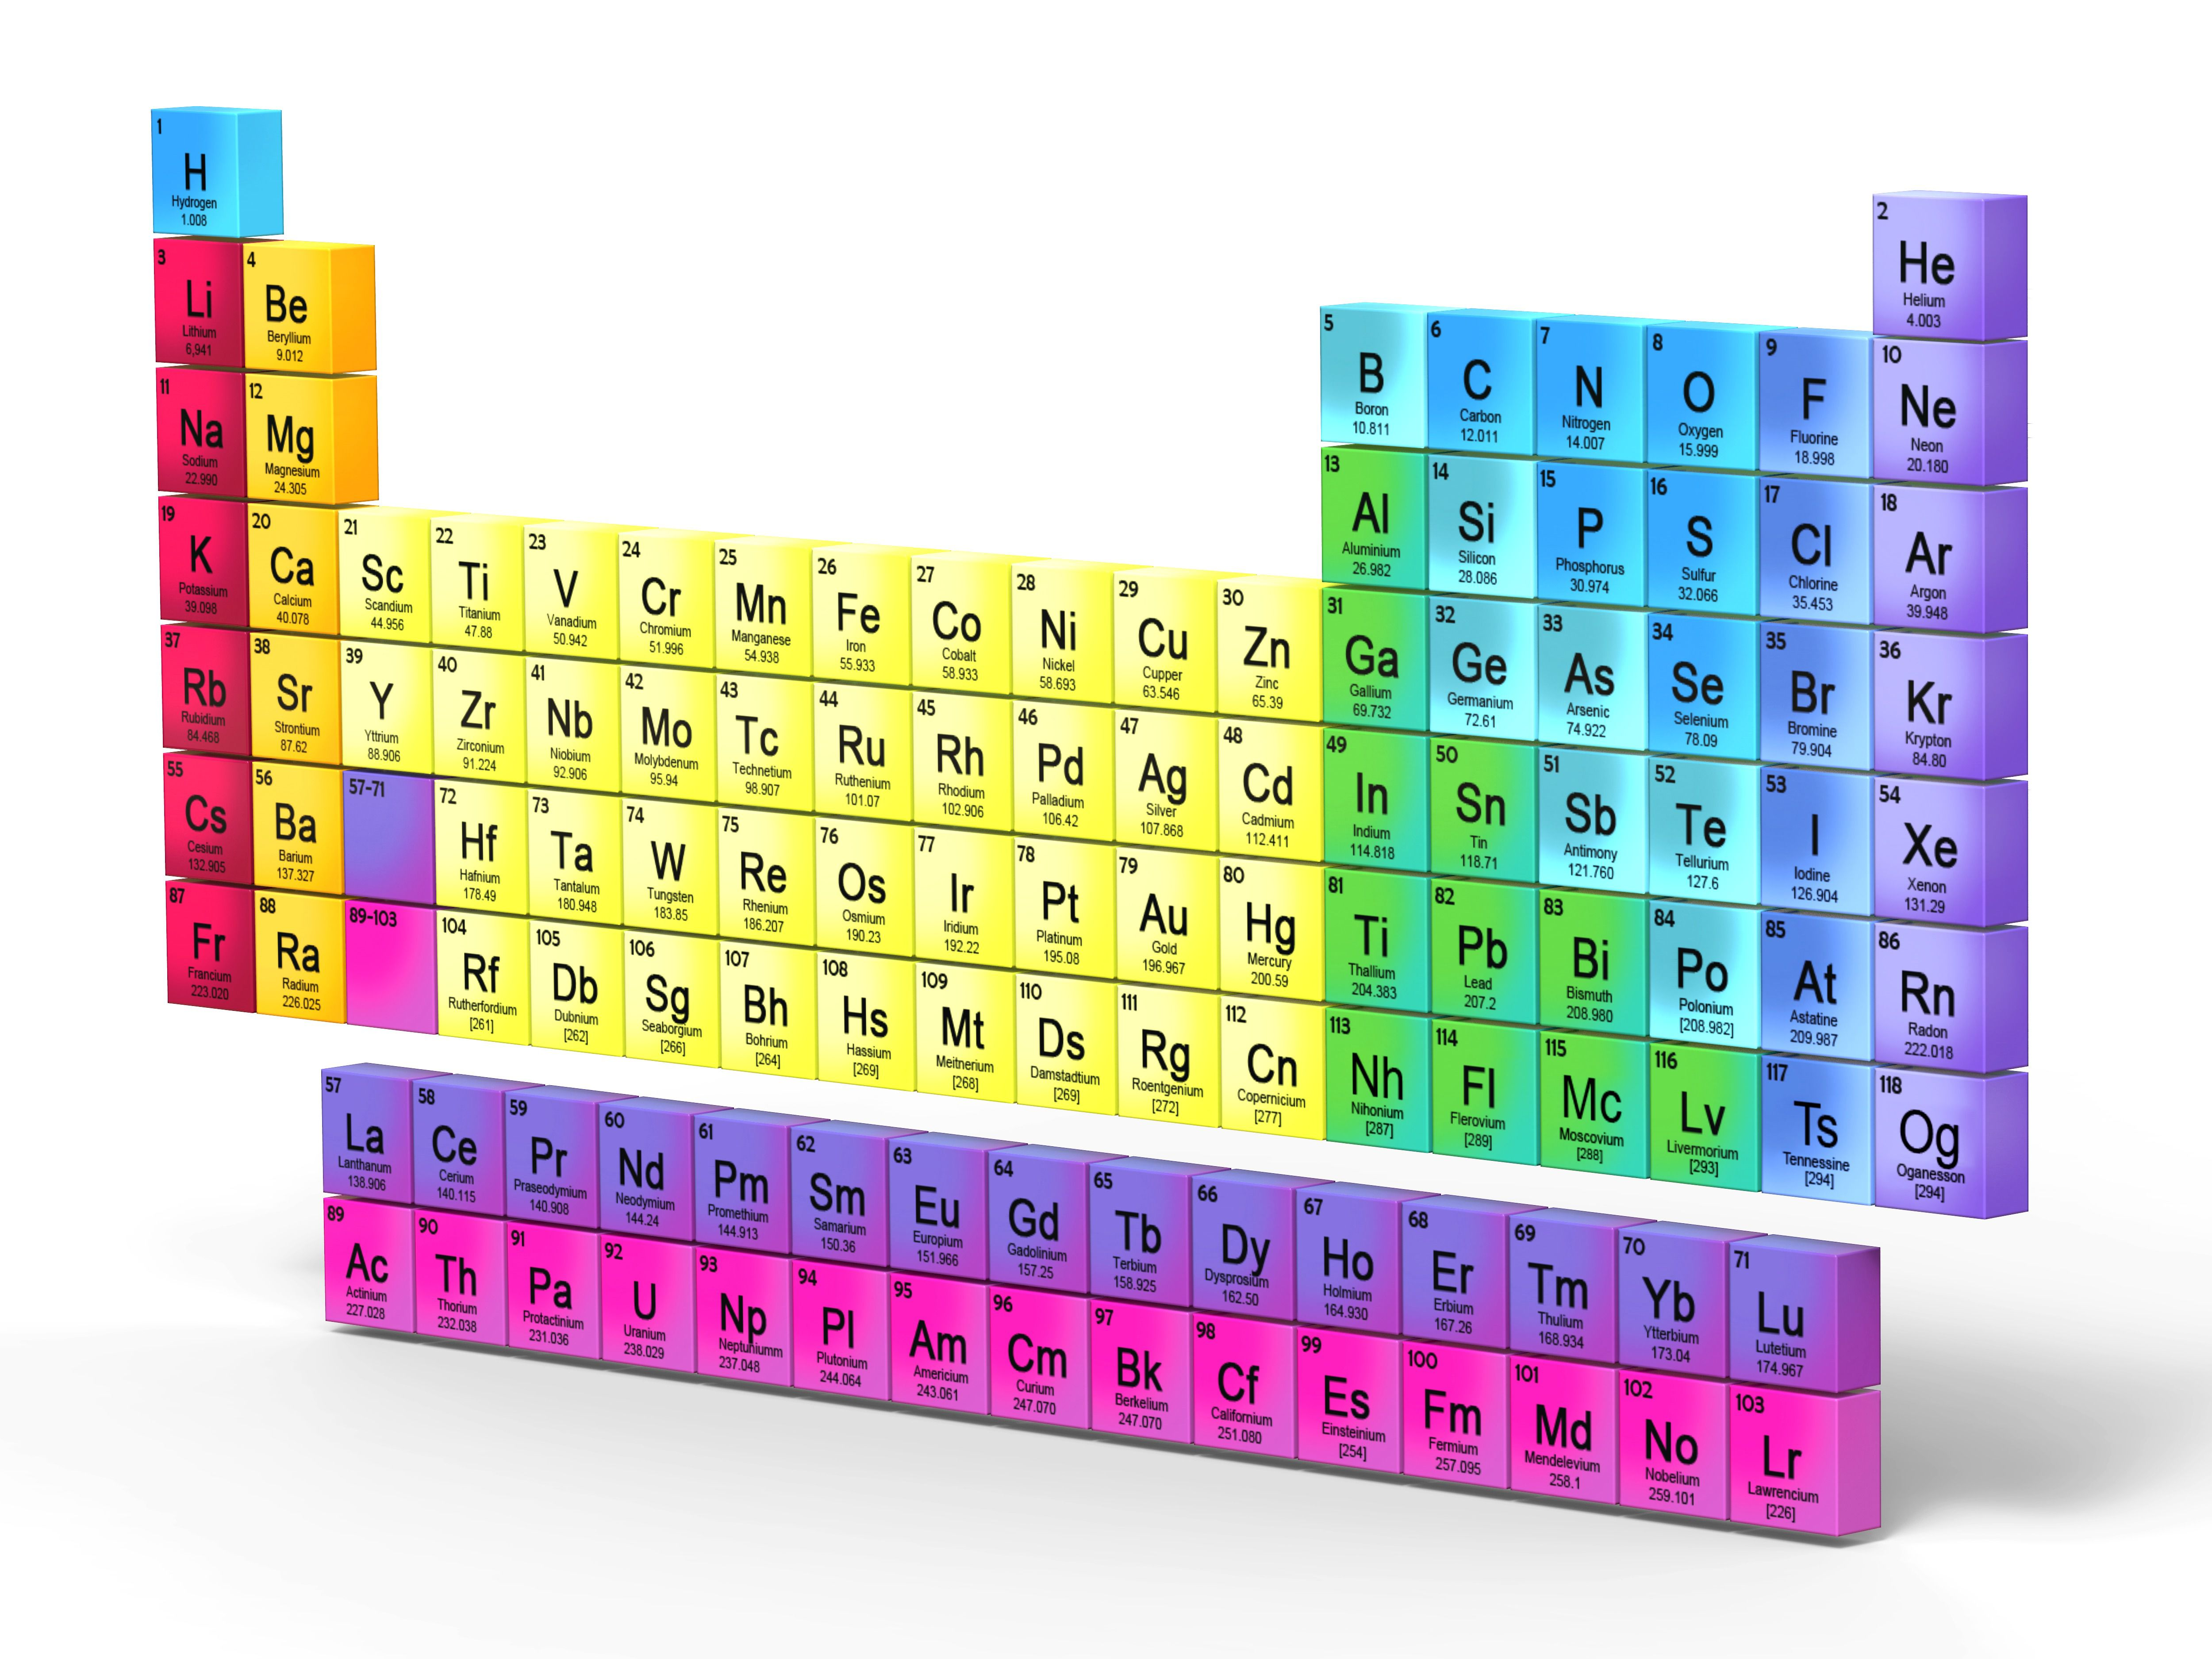 Element group 15 nitrogen family facts list of elements that are semimetals or metalloids colored periodic tables gamestrikefo Images